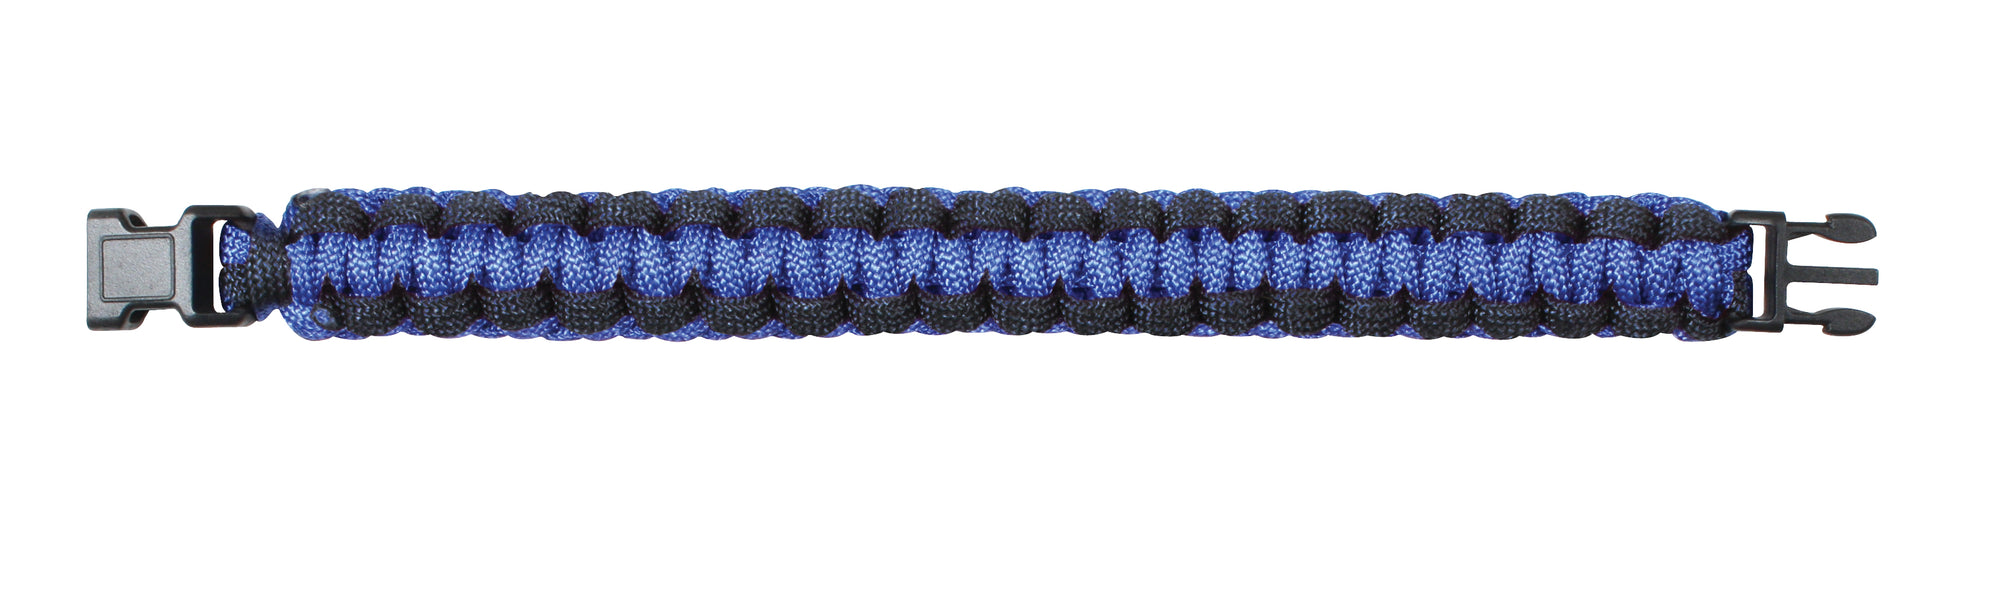 Rothco Thin Blue Line Paracord Bracelet - Red Diamond Uniform & Police Supply